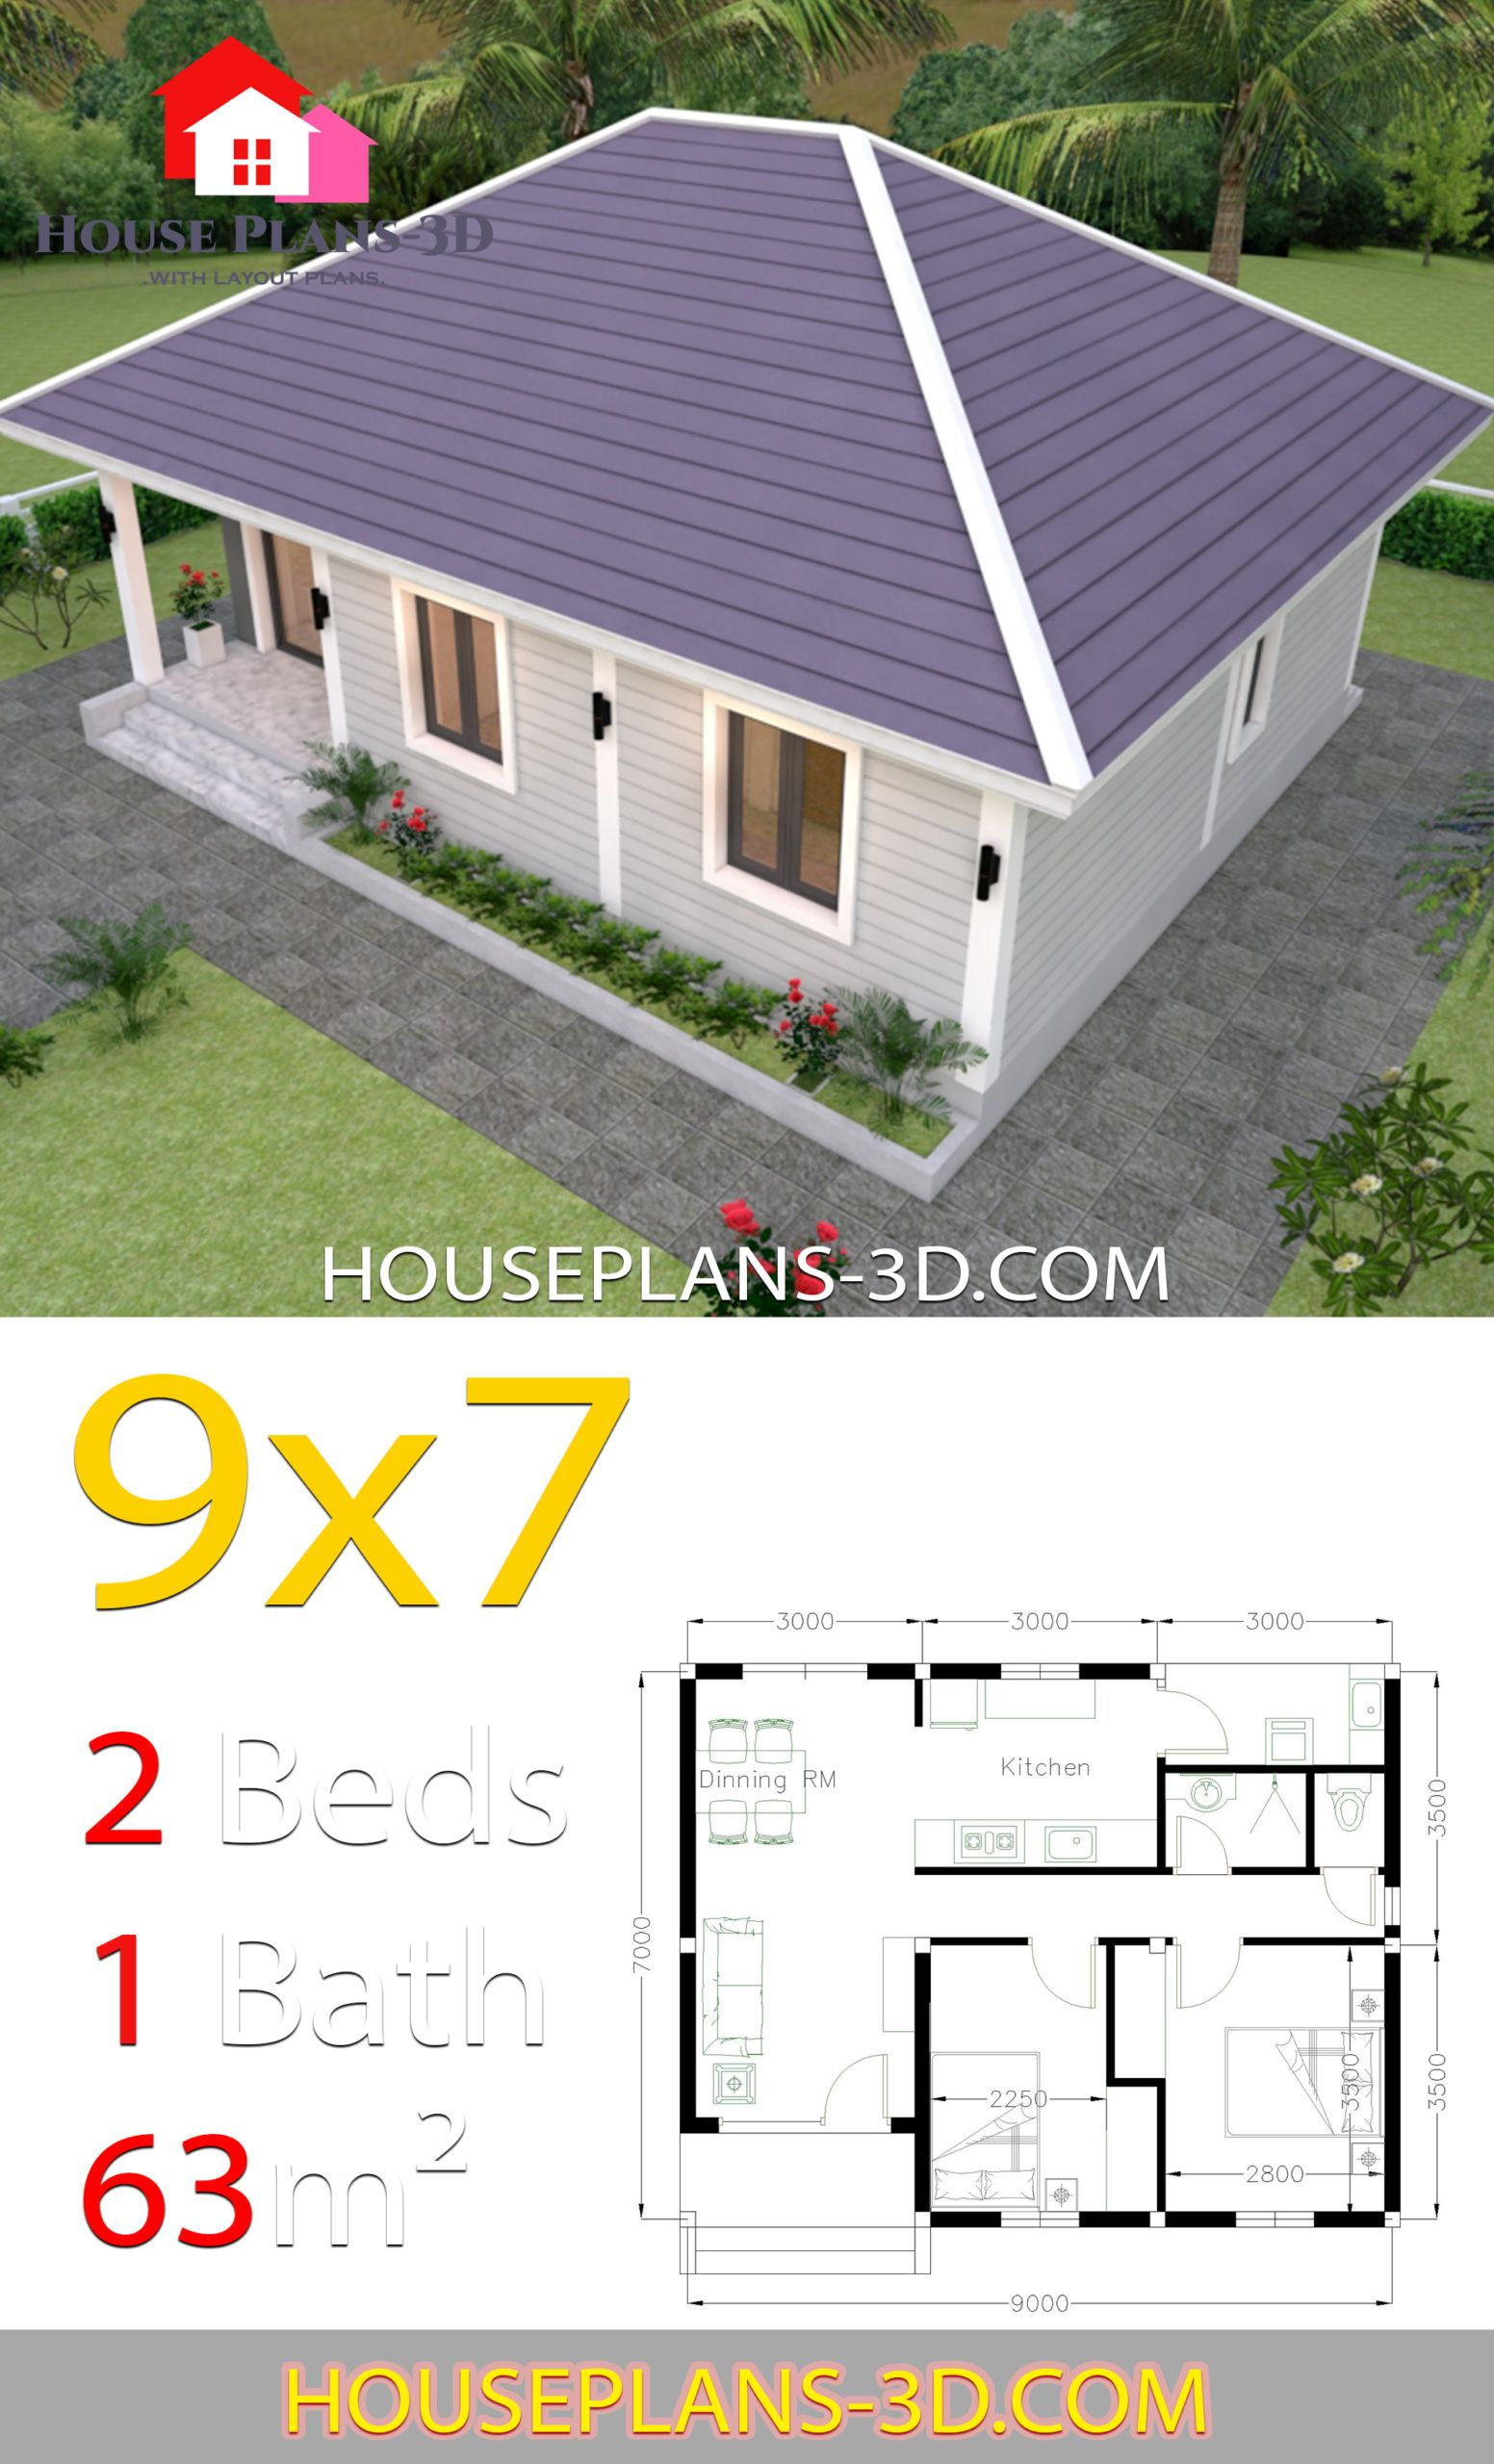 House Plans 9x7 With 2 Bedrooms Hip Roof House Plans 3d House Plans House Roof Simple House Plans